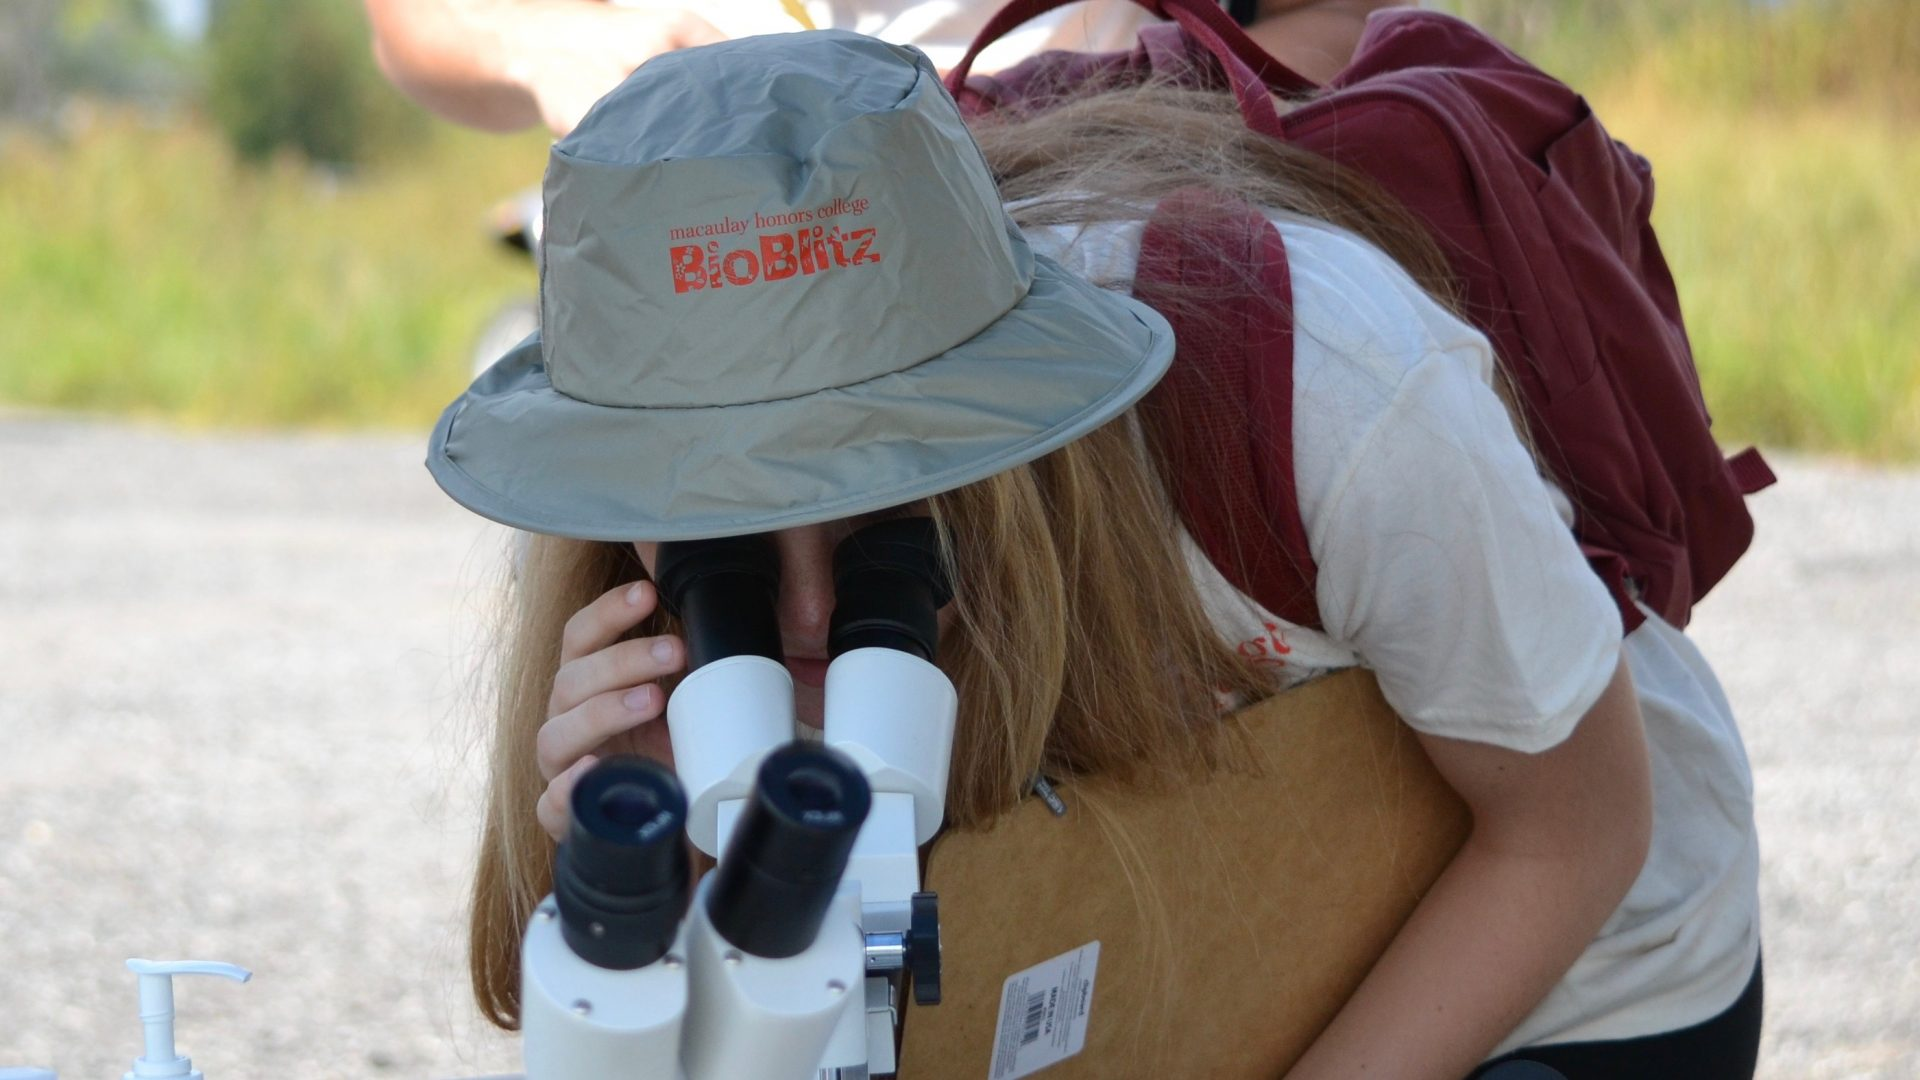 Student at Bioblitz looking at a microscope